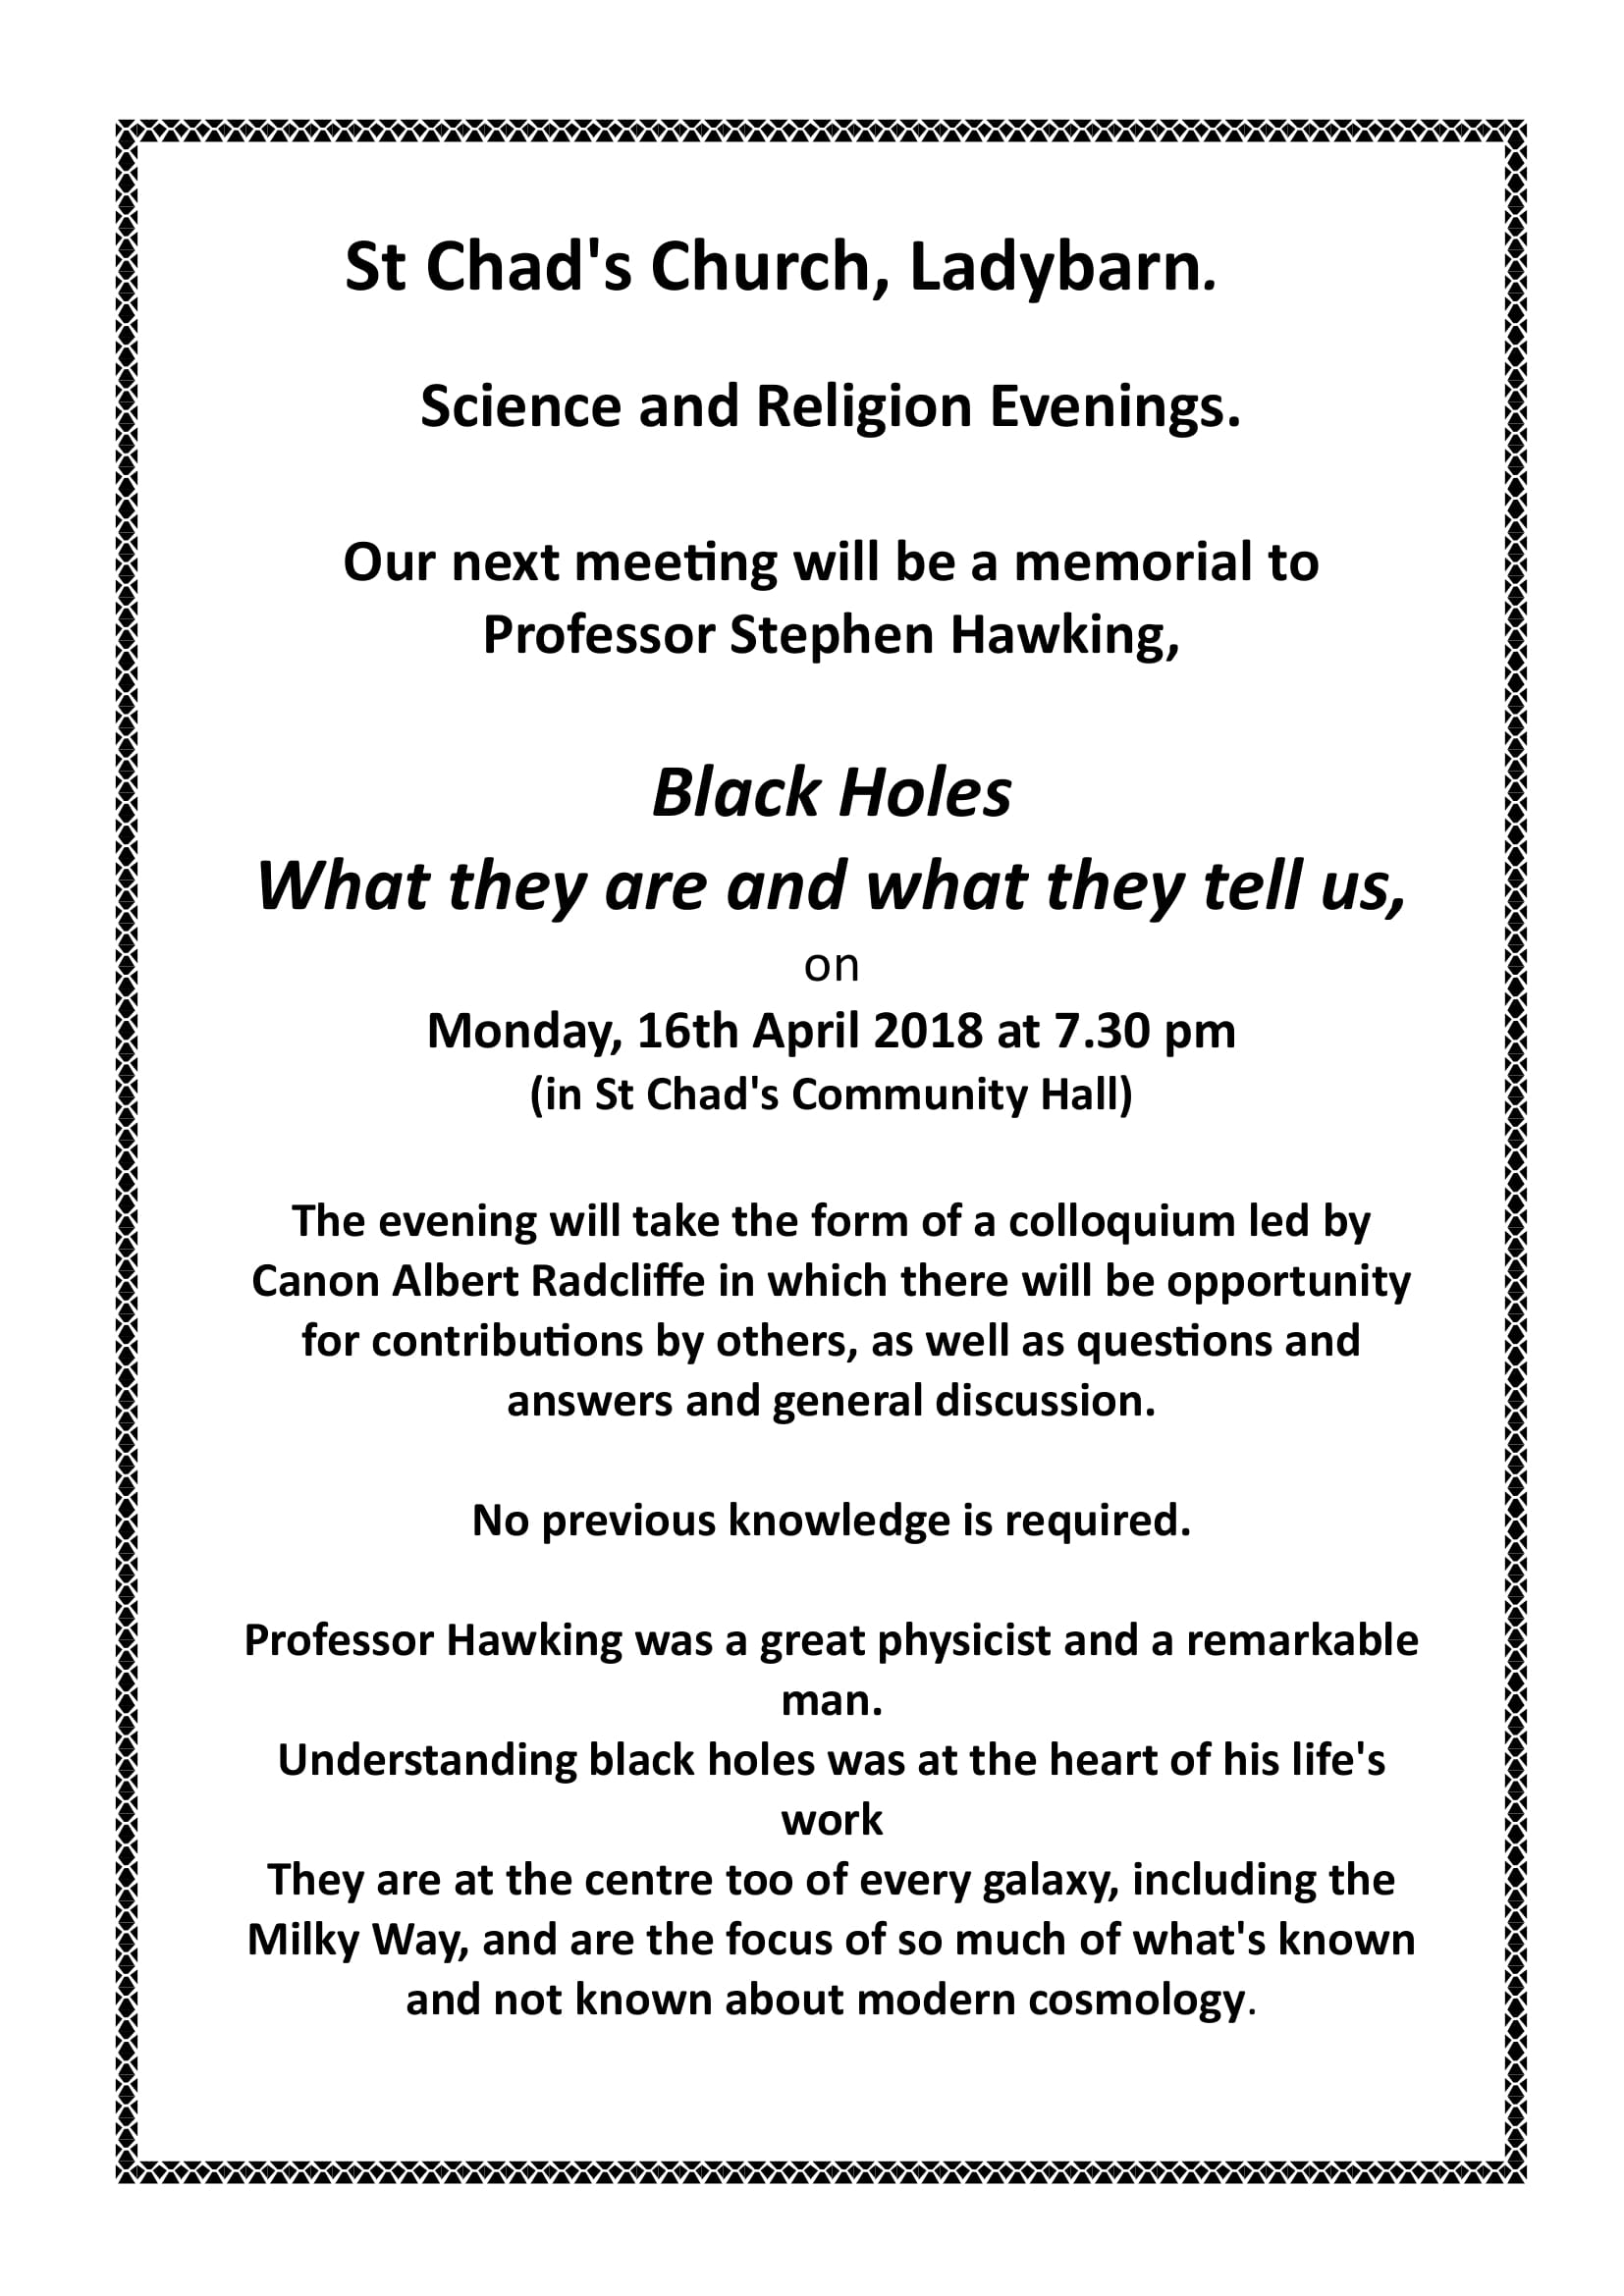 science_and_religion_evening_April_18-1_1_.jpg